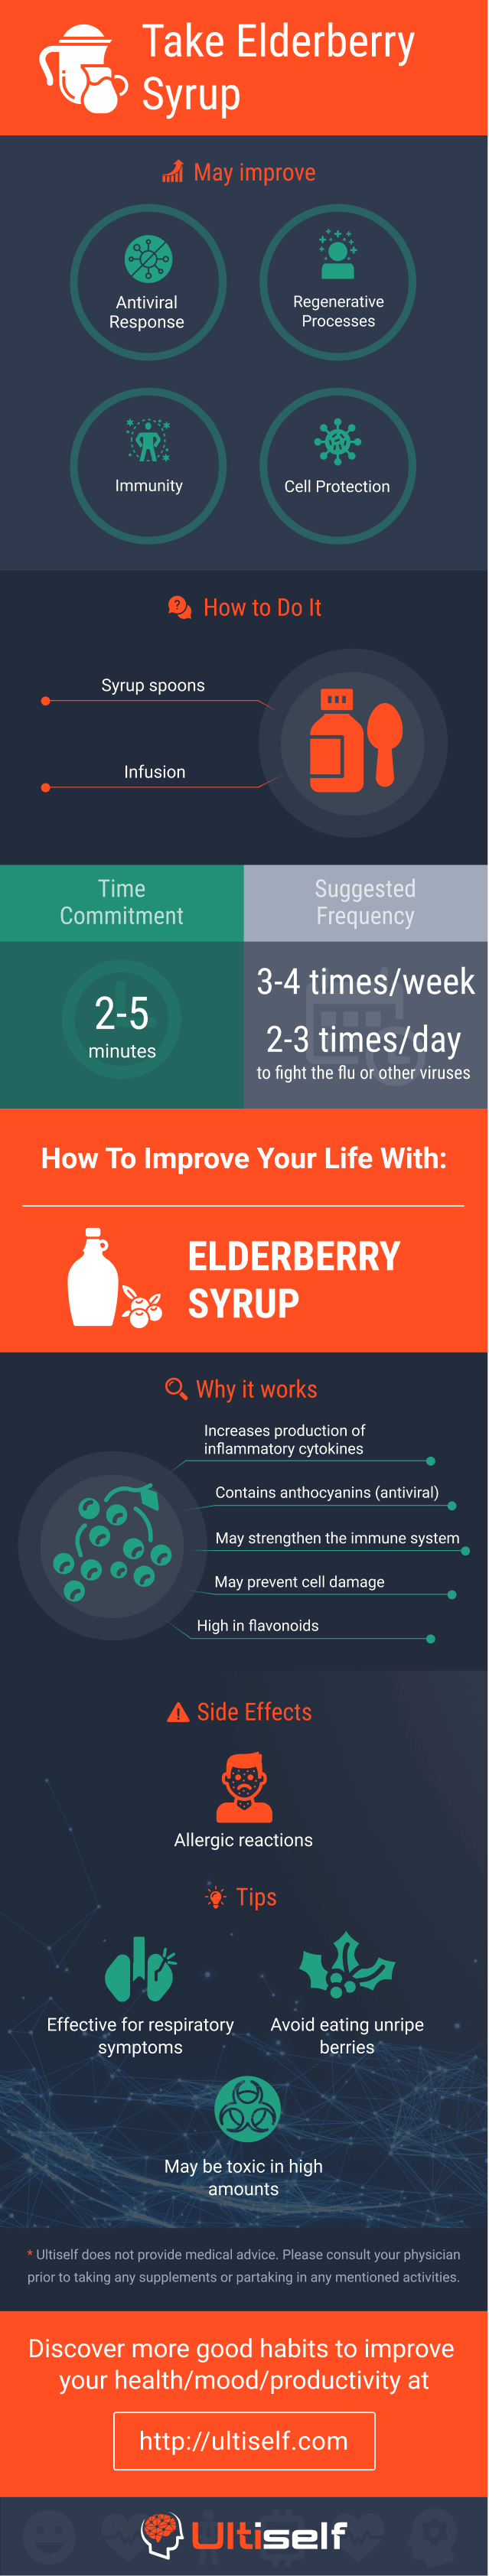 Take Elderberry Syrup infographic